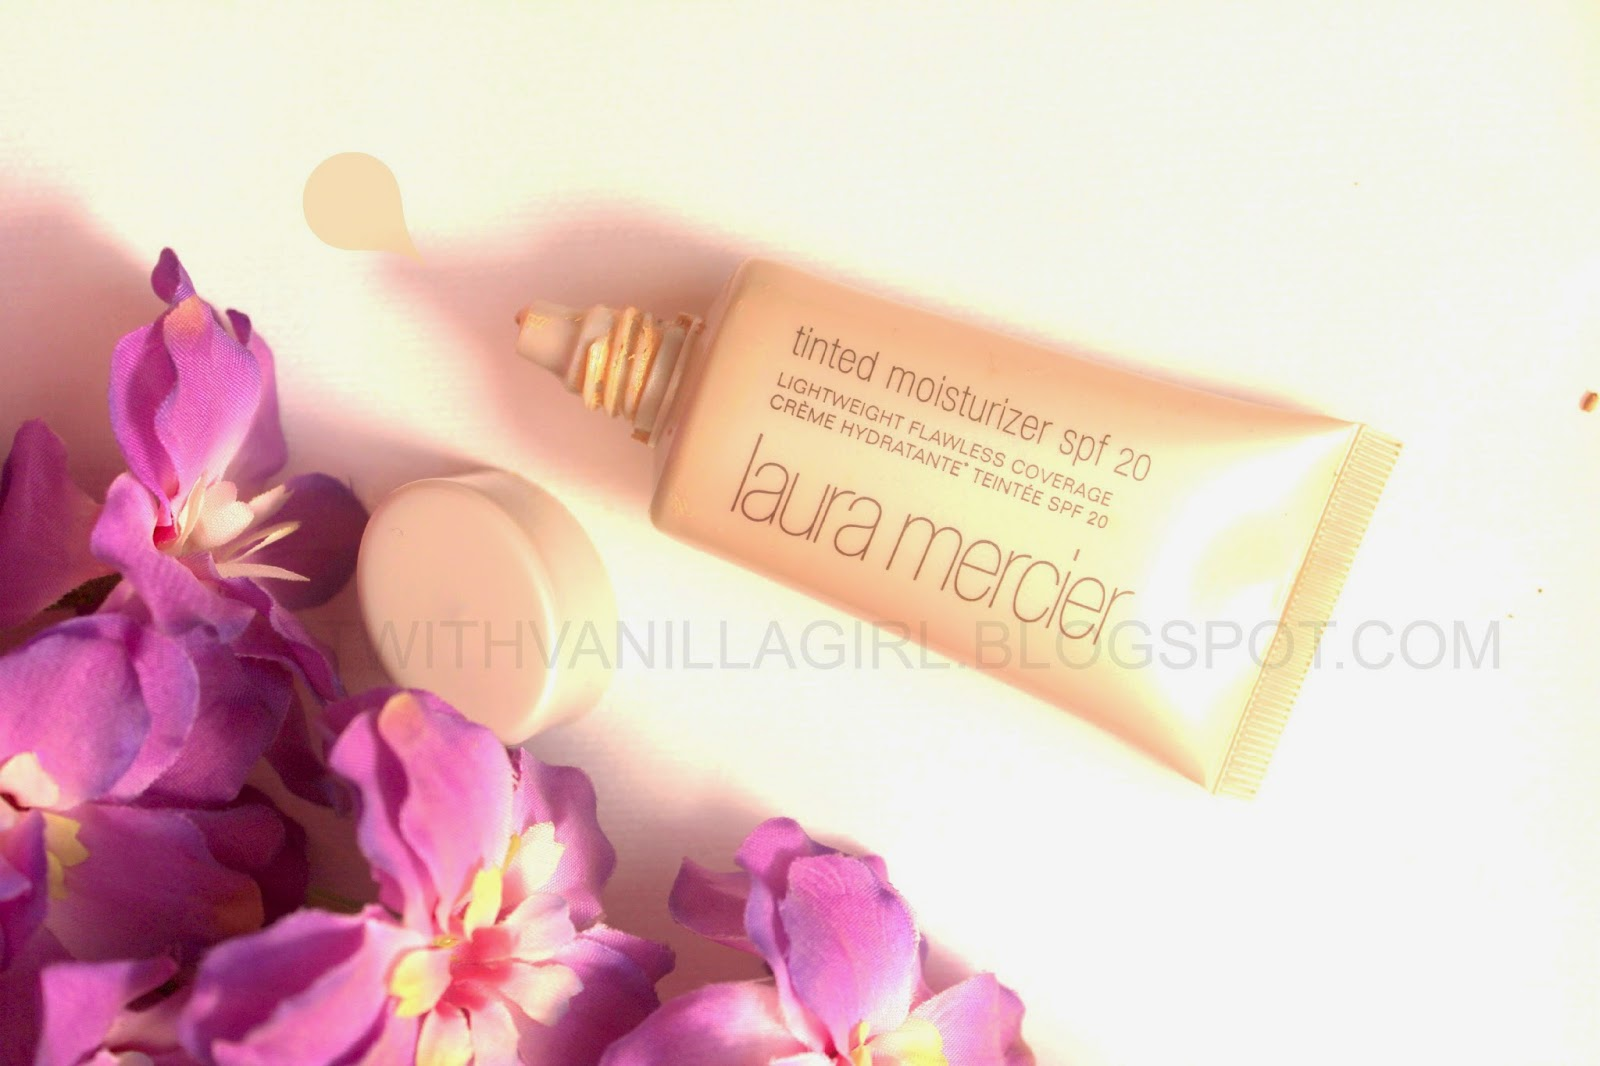 LAURA MERCIER'S TINTED MOISTURISER WITH SPF 20